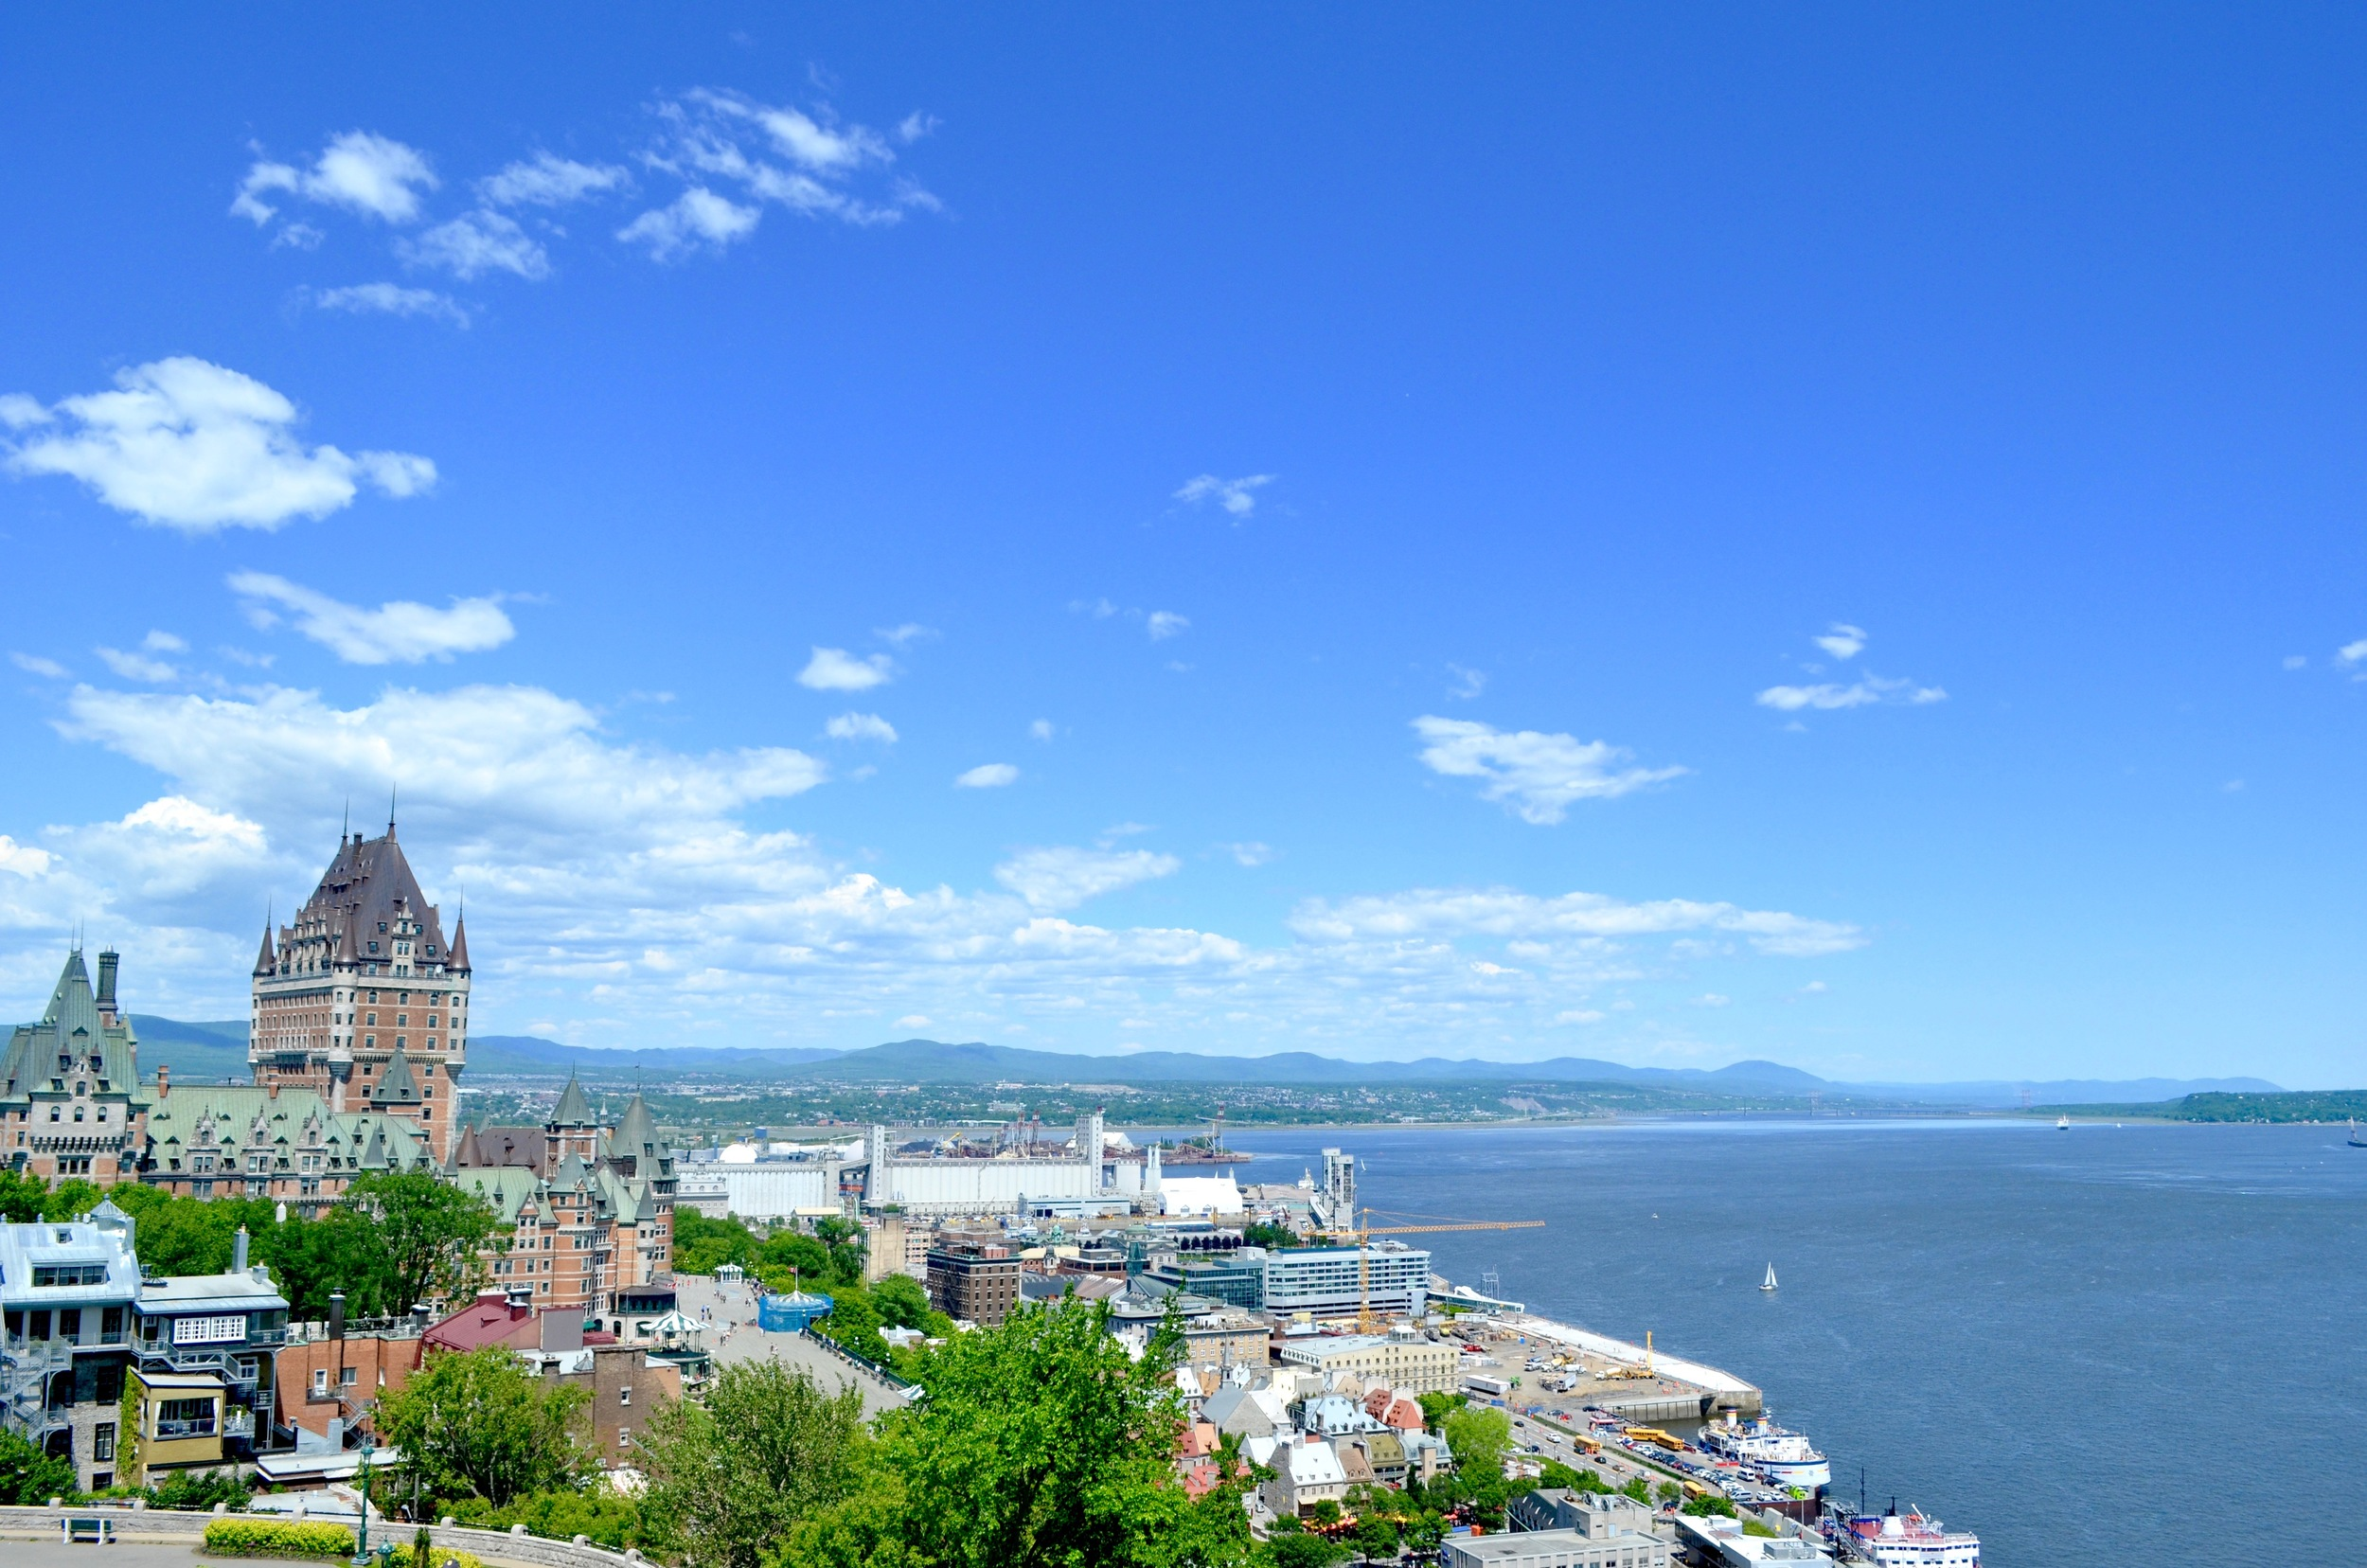 The view from the Citadelle